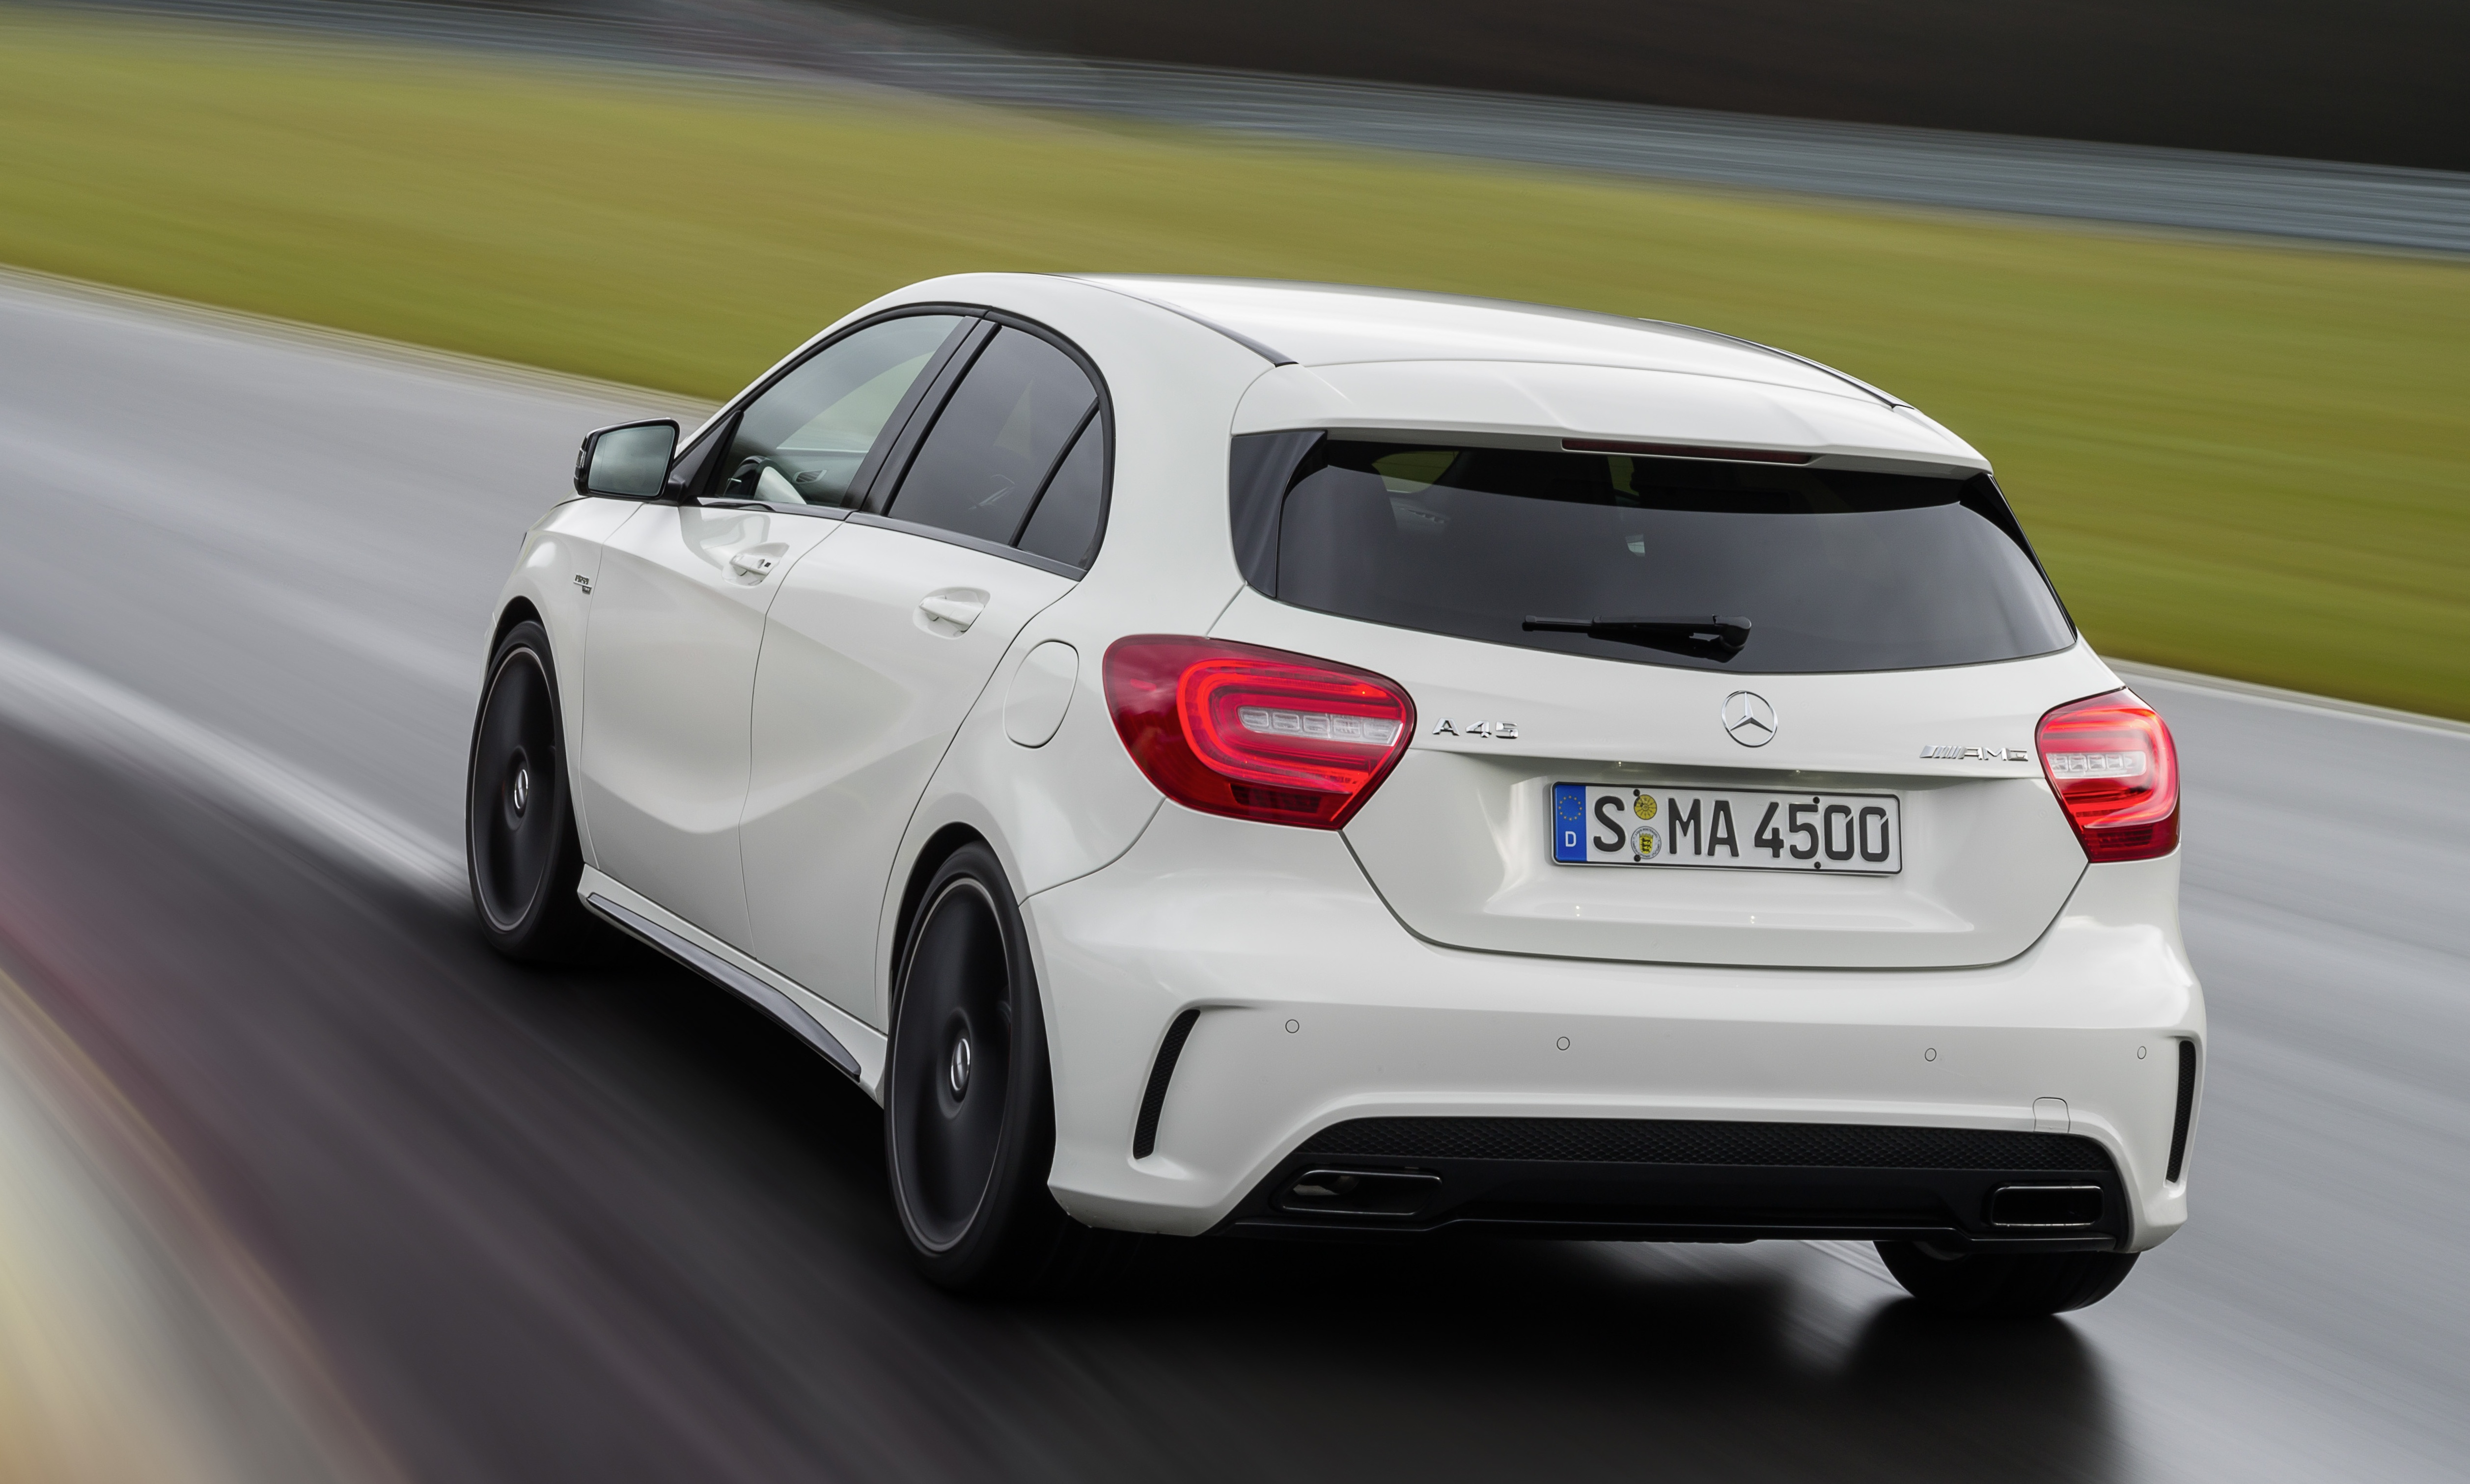 Mercedes benz a 45 amg 360hp 450nm range topper image 154452 for Mercedes benz amg range